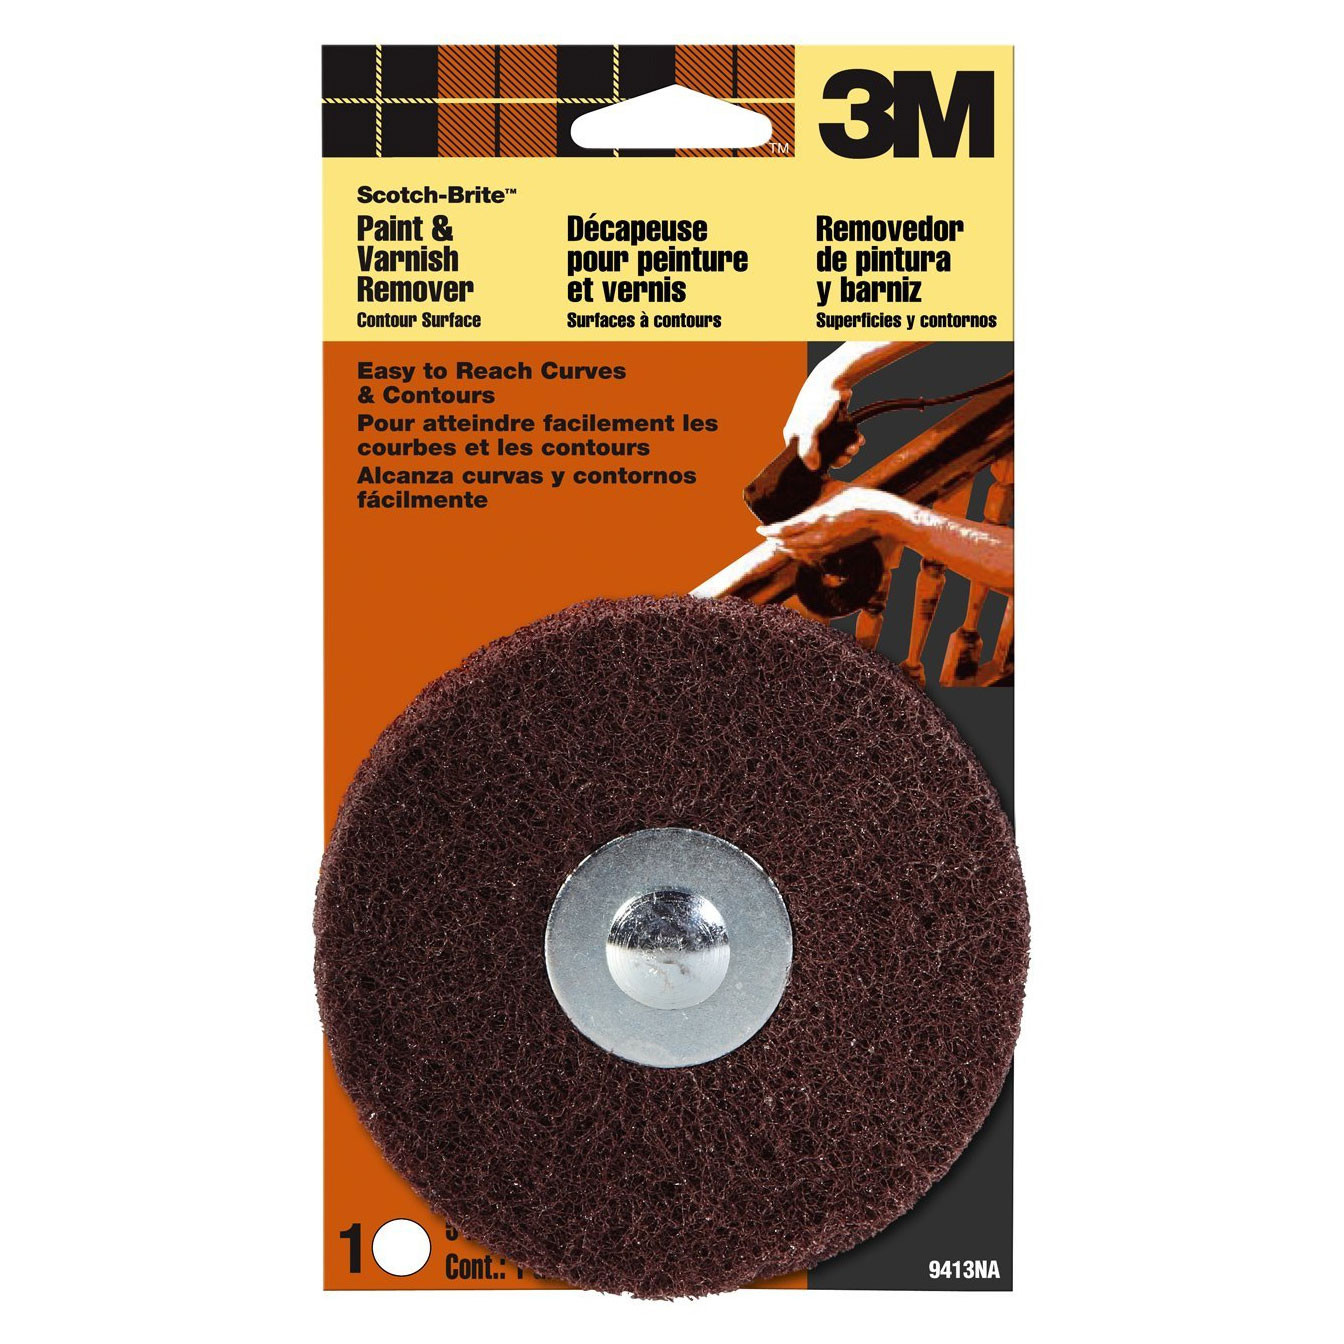 3M 9413NA Contour Surface Sanding Disc For Paint And Varnish Removal